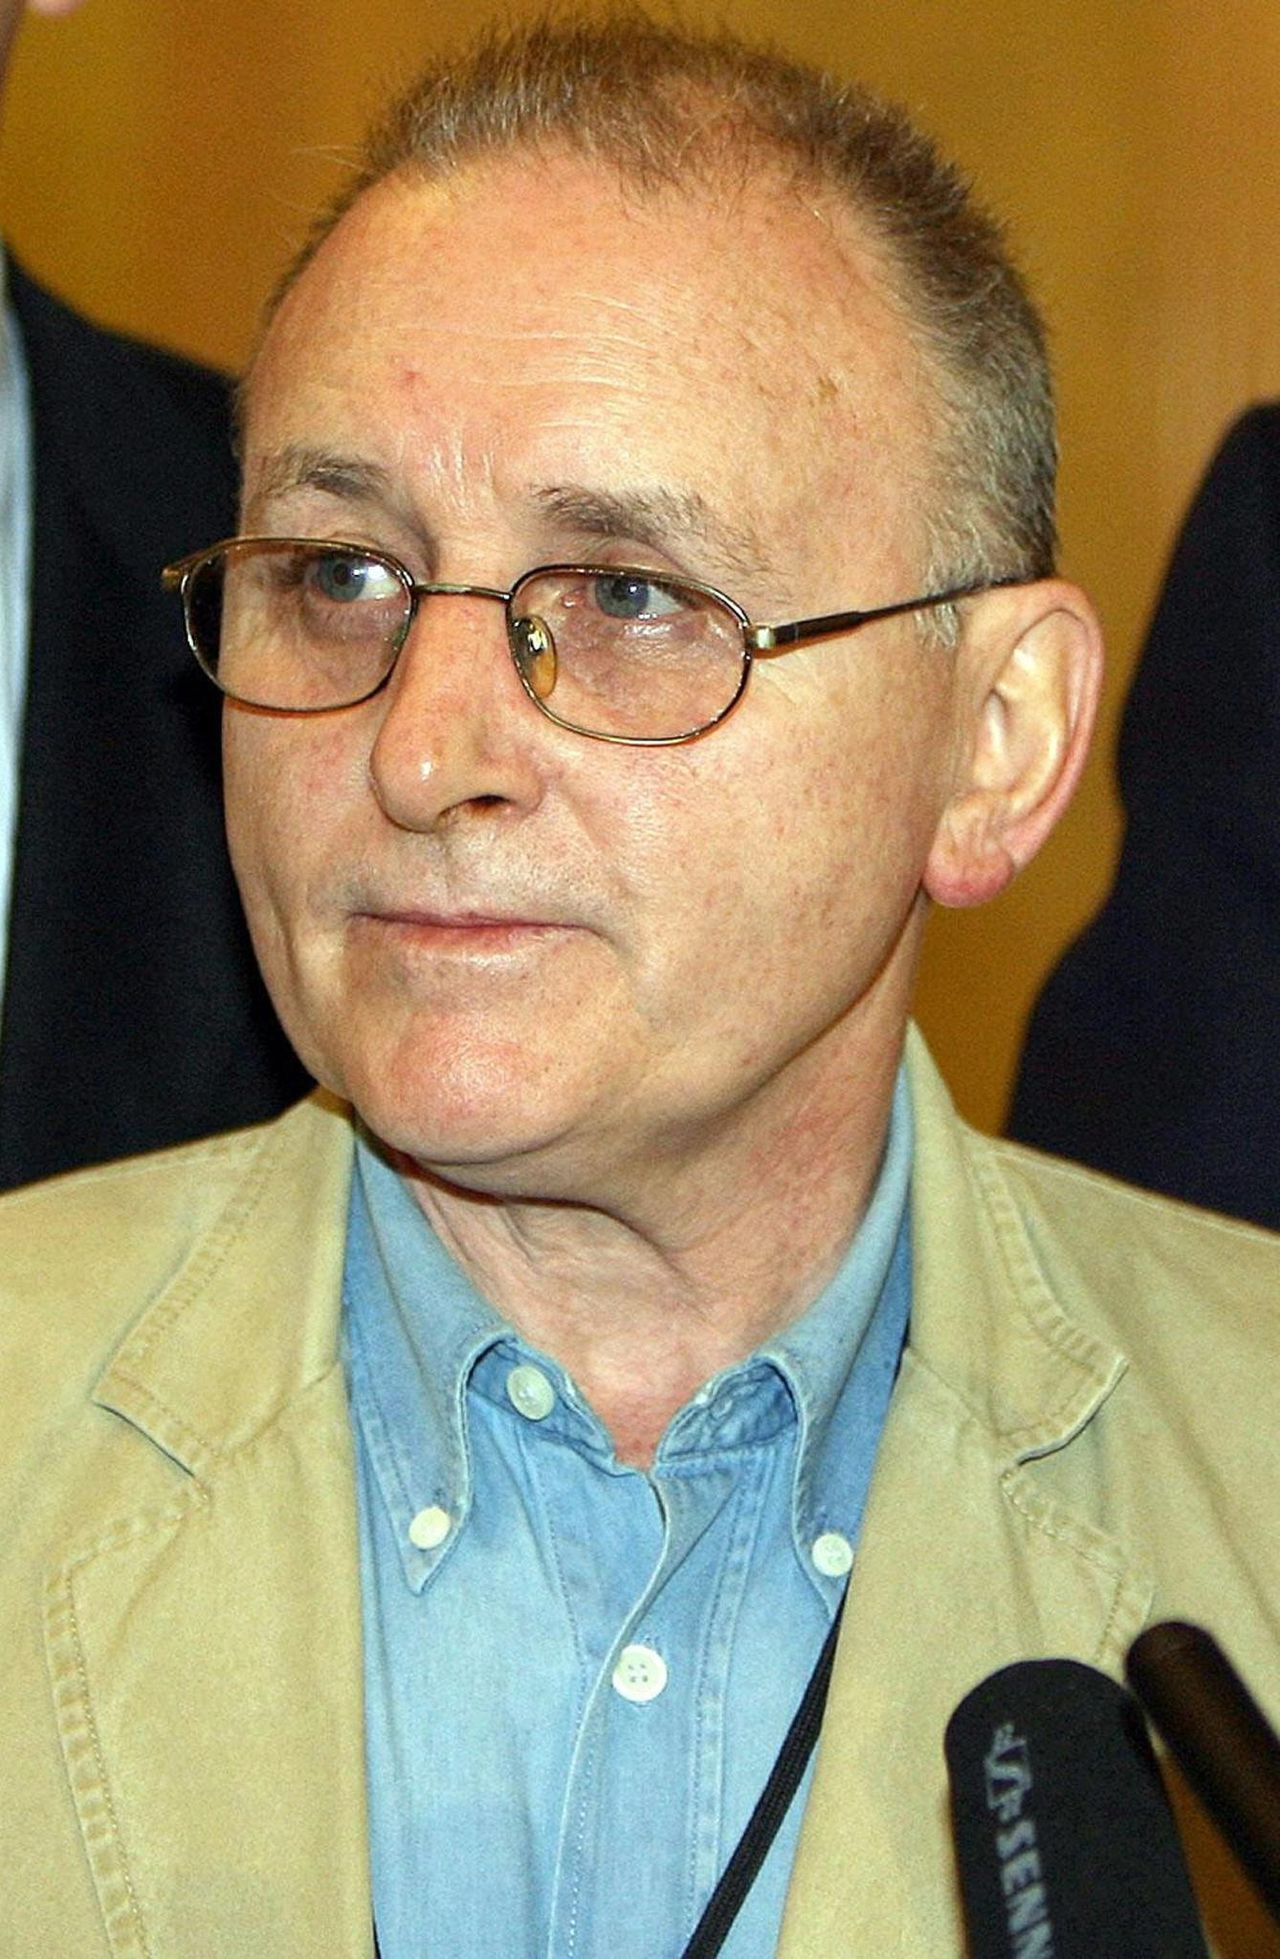 Denis Donaldson Foto AP ** FILE ** File photo dated Dec. 9 2005, of Denis Donaldson, former Sinn Fein party official, whose body was found in Co. Donegal, Ireland, it was confirmed Tuesday April 4, 2006. The former senior official of Sinn Fein recently exposed as a British spy has been found fatally shot in northwest Ireland, police and party sources said Tuesday. Donaldson, Sinn Fein's former legislative chief in Northern Ireland's power-sharing government, admitted in December he had been on the payroll of the British secret service and the province's anti-terrorist police for the previous two decades. (AP Photo / Paul Faith, PA) ** UNITED KINGDOM OUT NO SALES NO ARCHIVE **